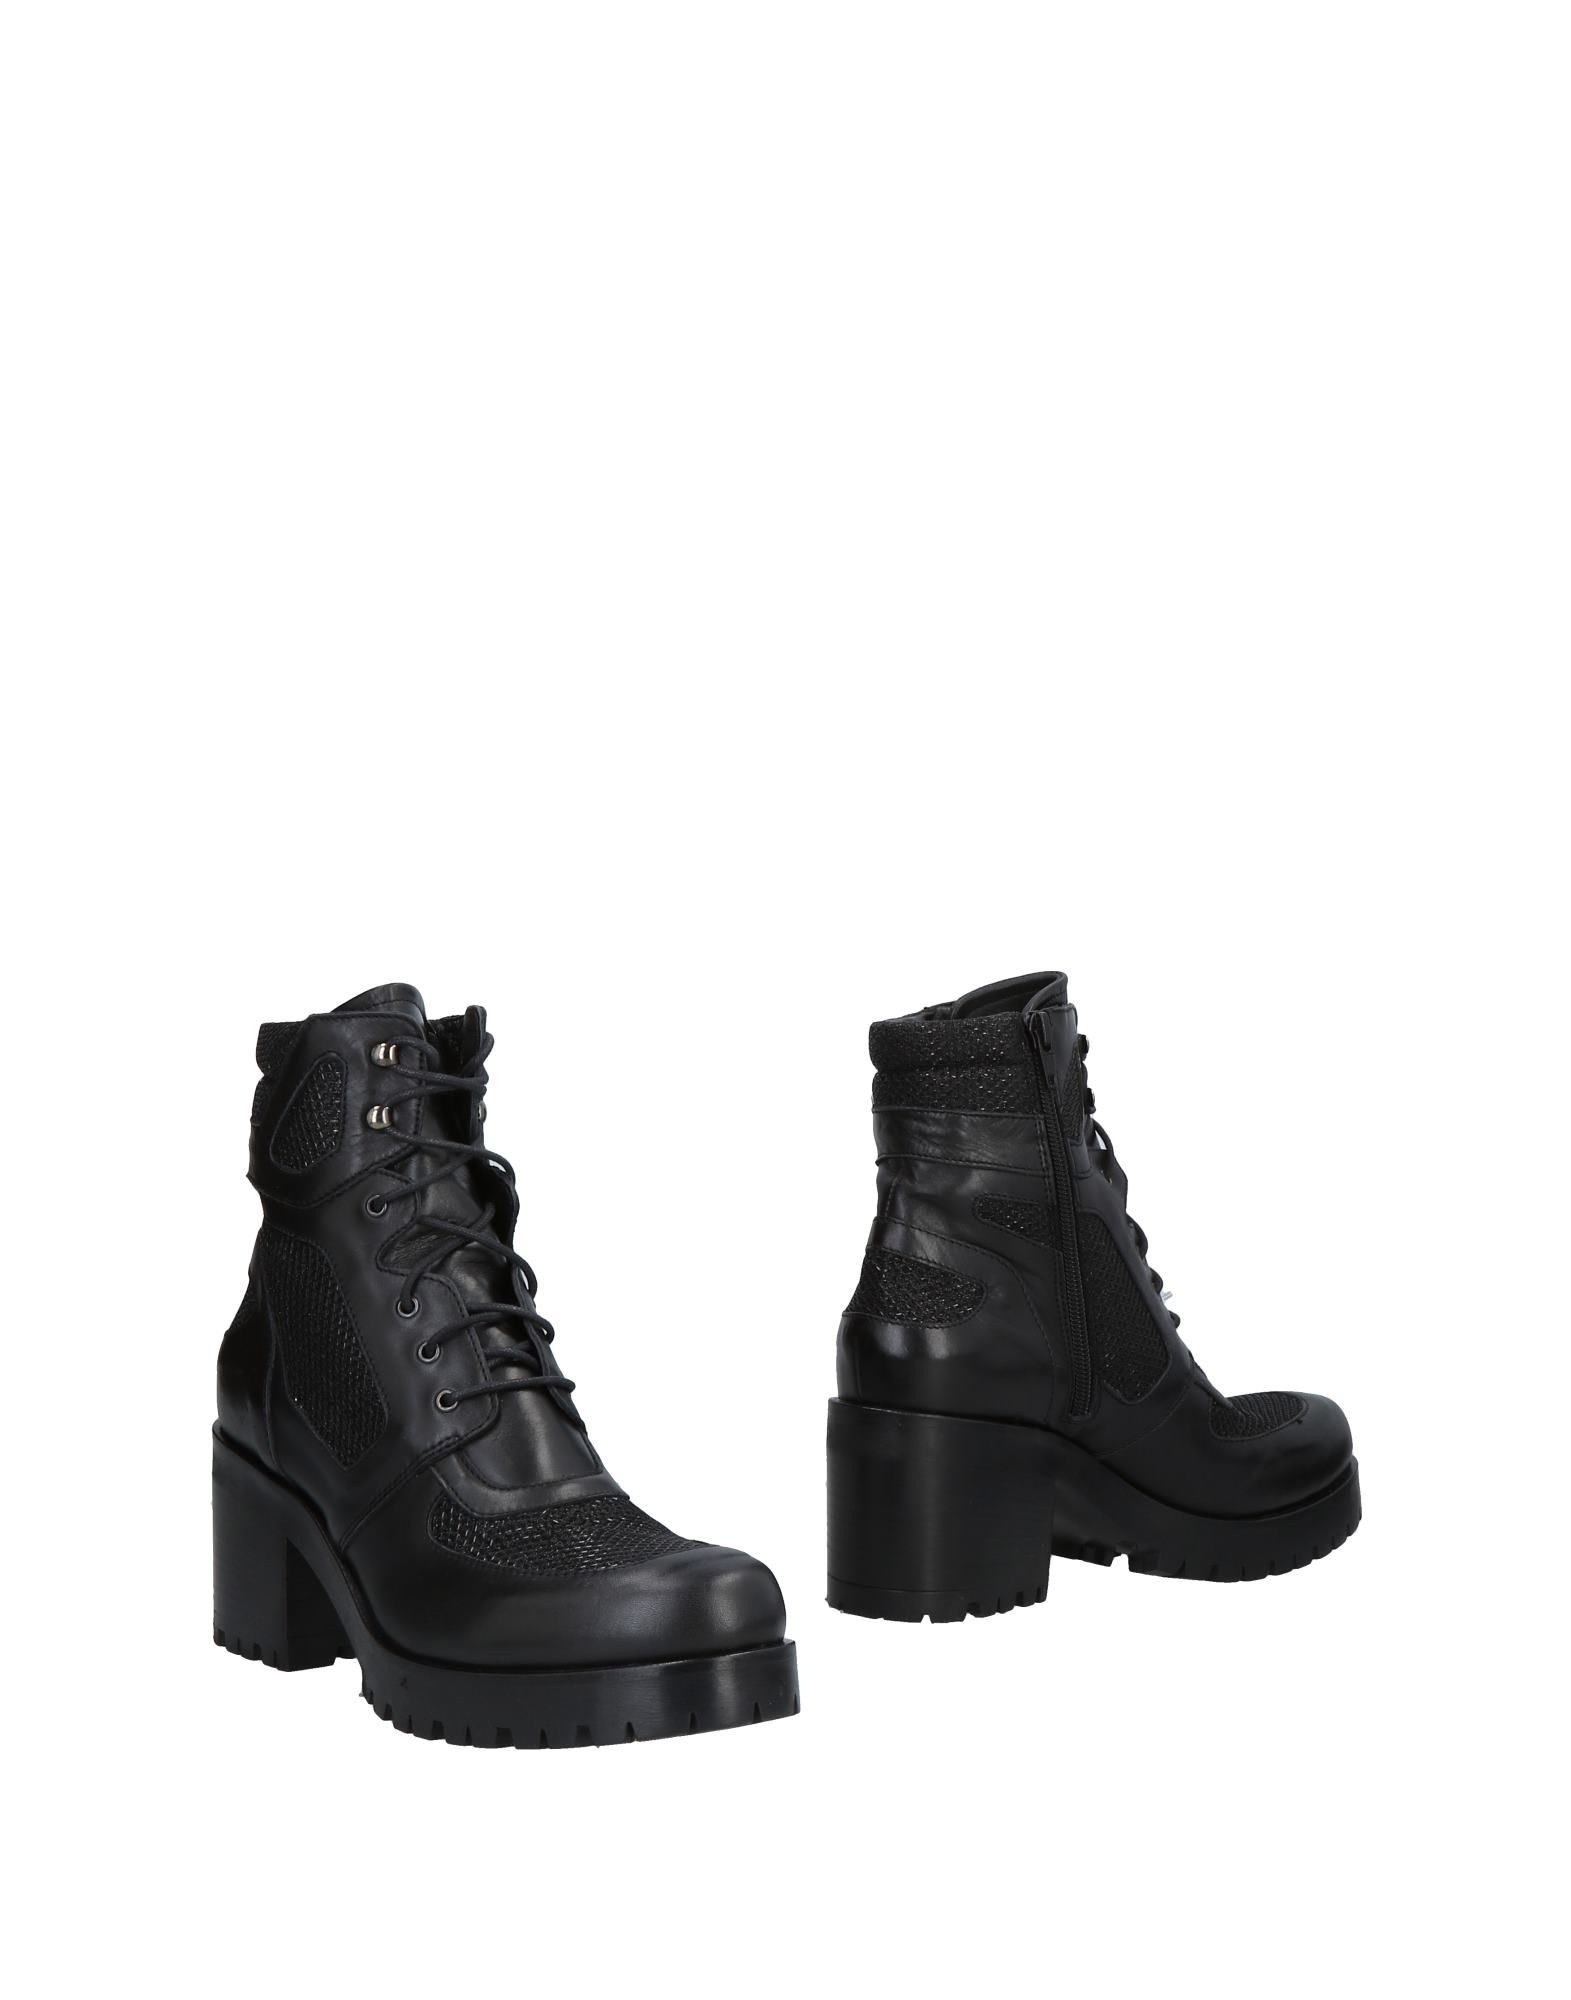 Strategia Strategia Ankle Boot - Women Strategia Strategia Ankle Boots online on  United Kingdom - 11489466QW 4cc3f0